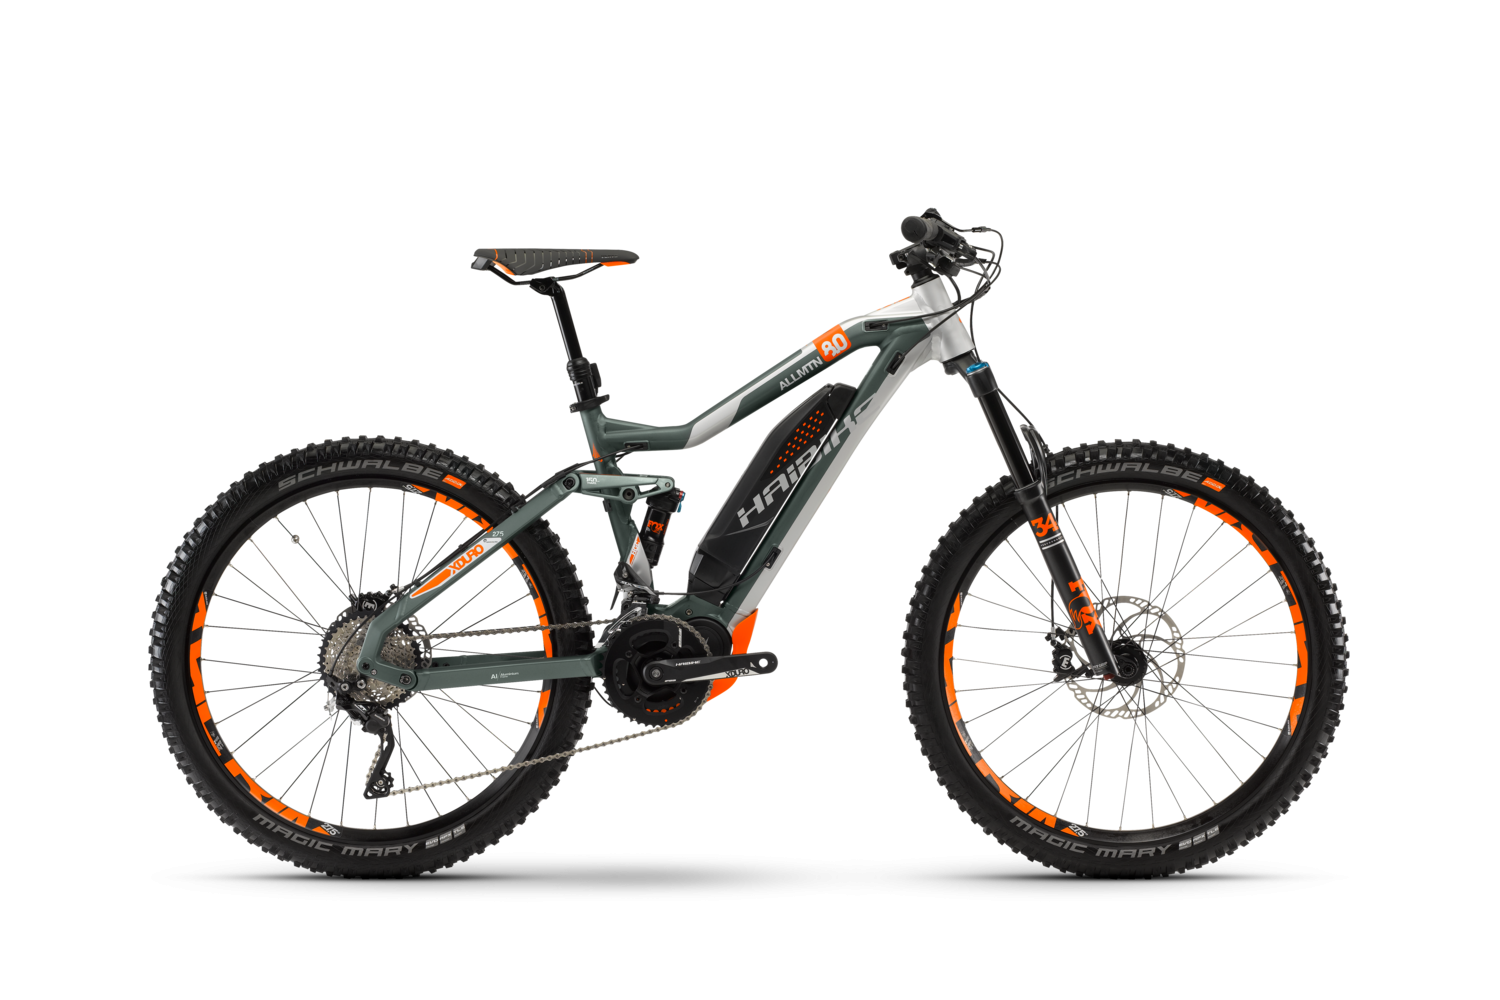 2018 XDURO All-Mountain 8.0 E-Bike